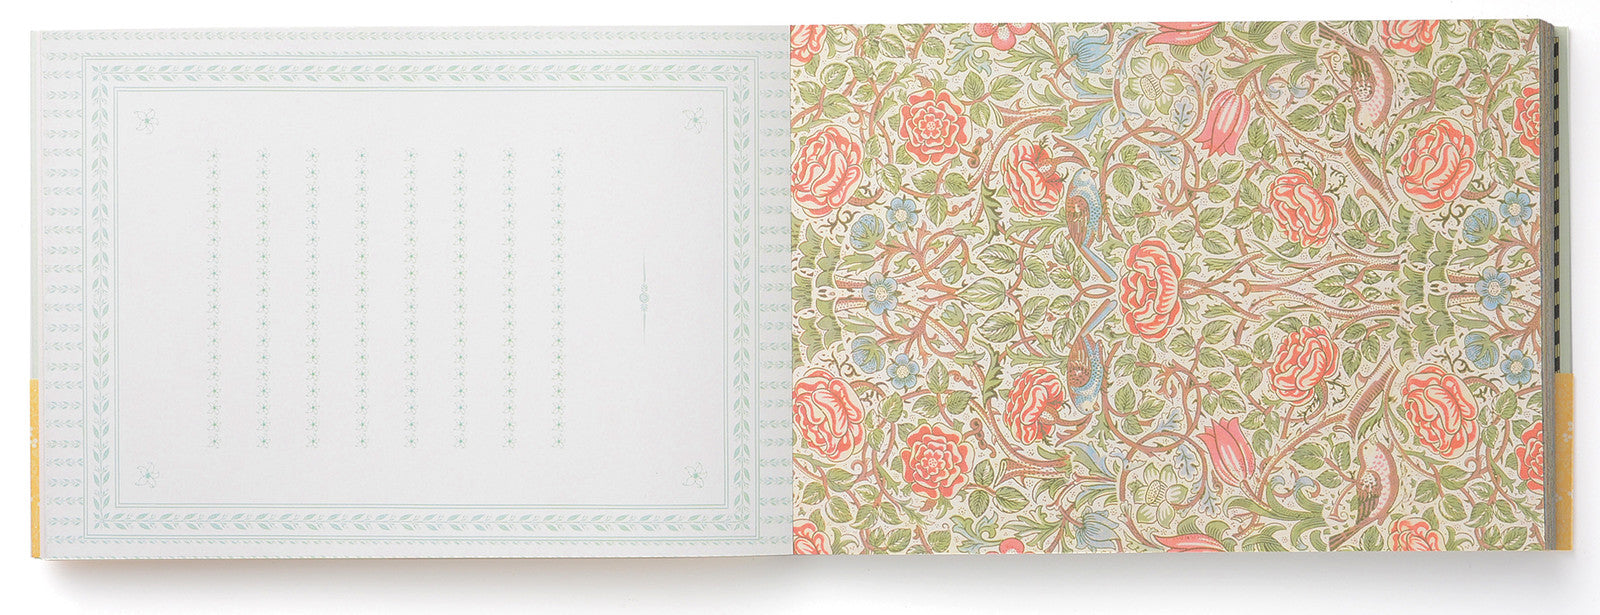 100 Writing Papers - William Morris